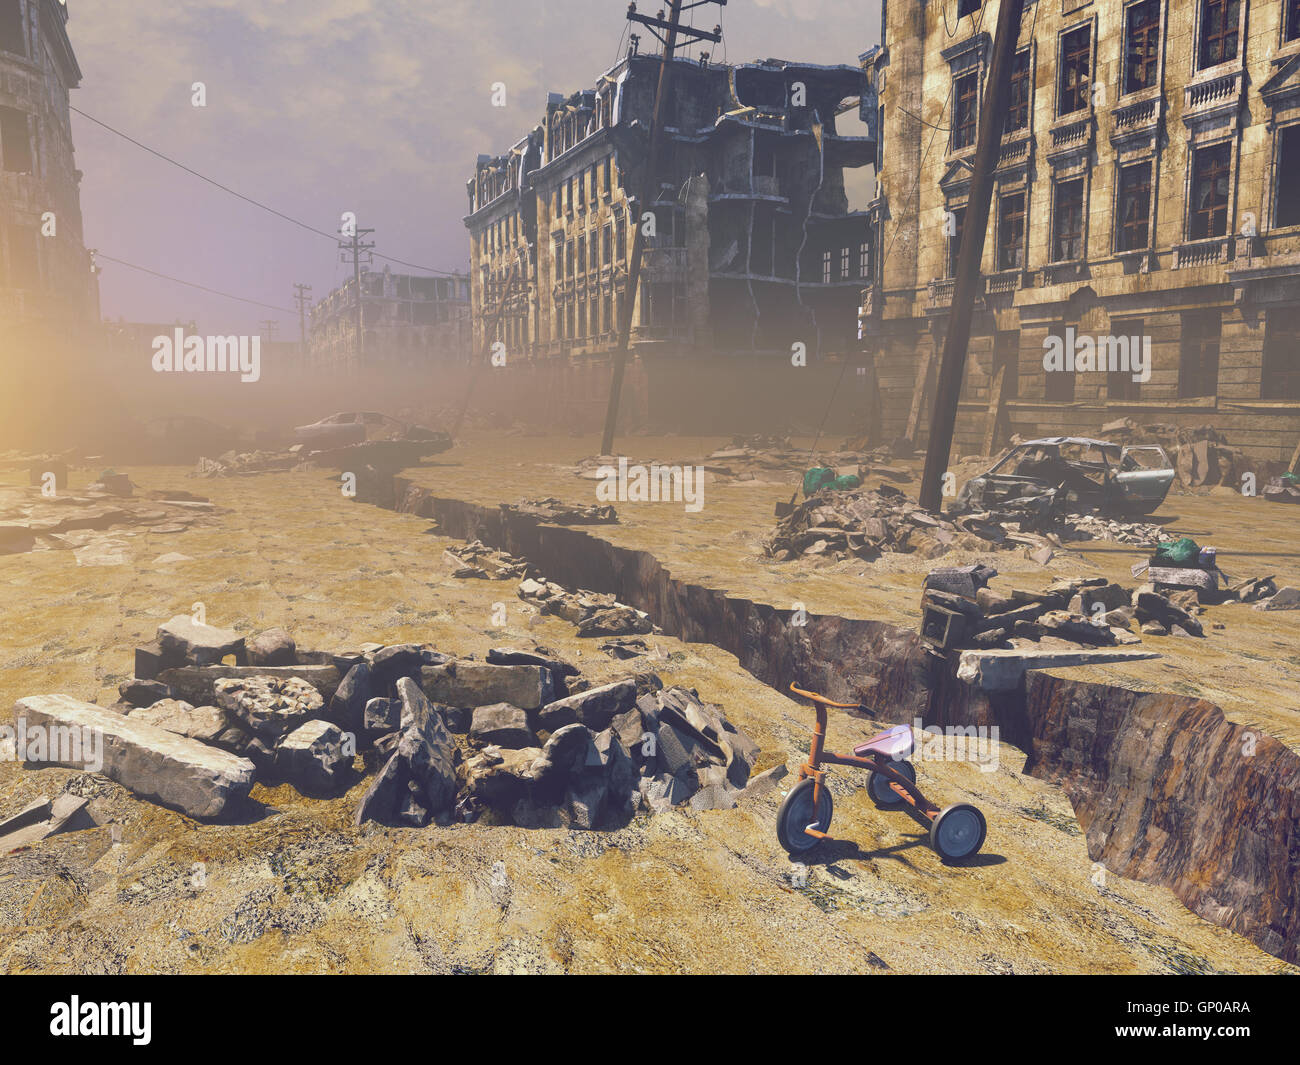 ruins of a city with a crack in the street. 3d illustration concept - Stock Image